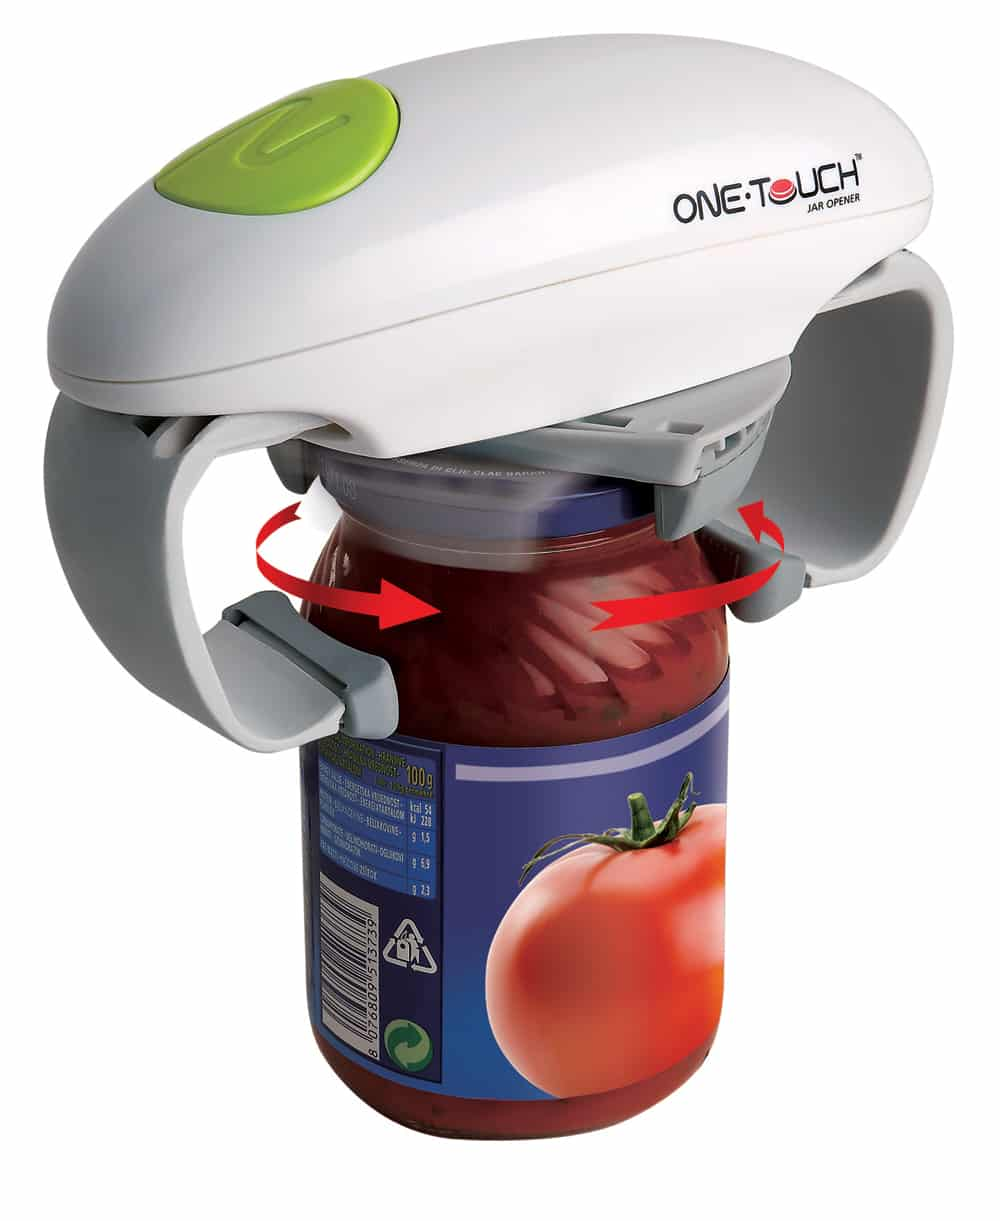 One_Touch_Jar_Opener